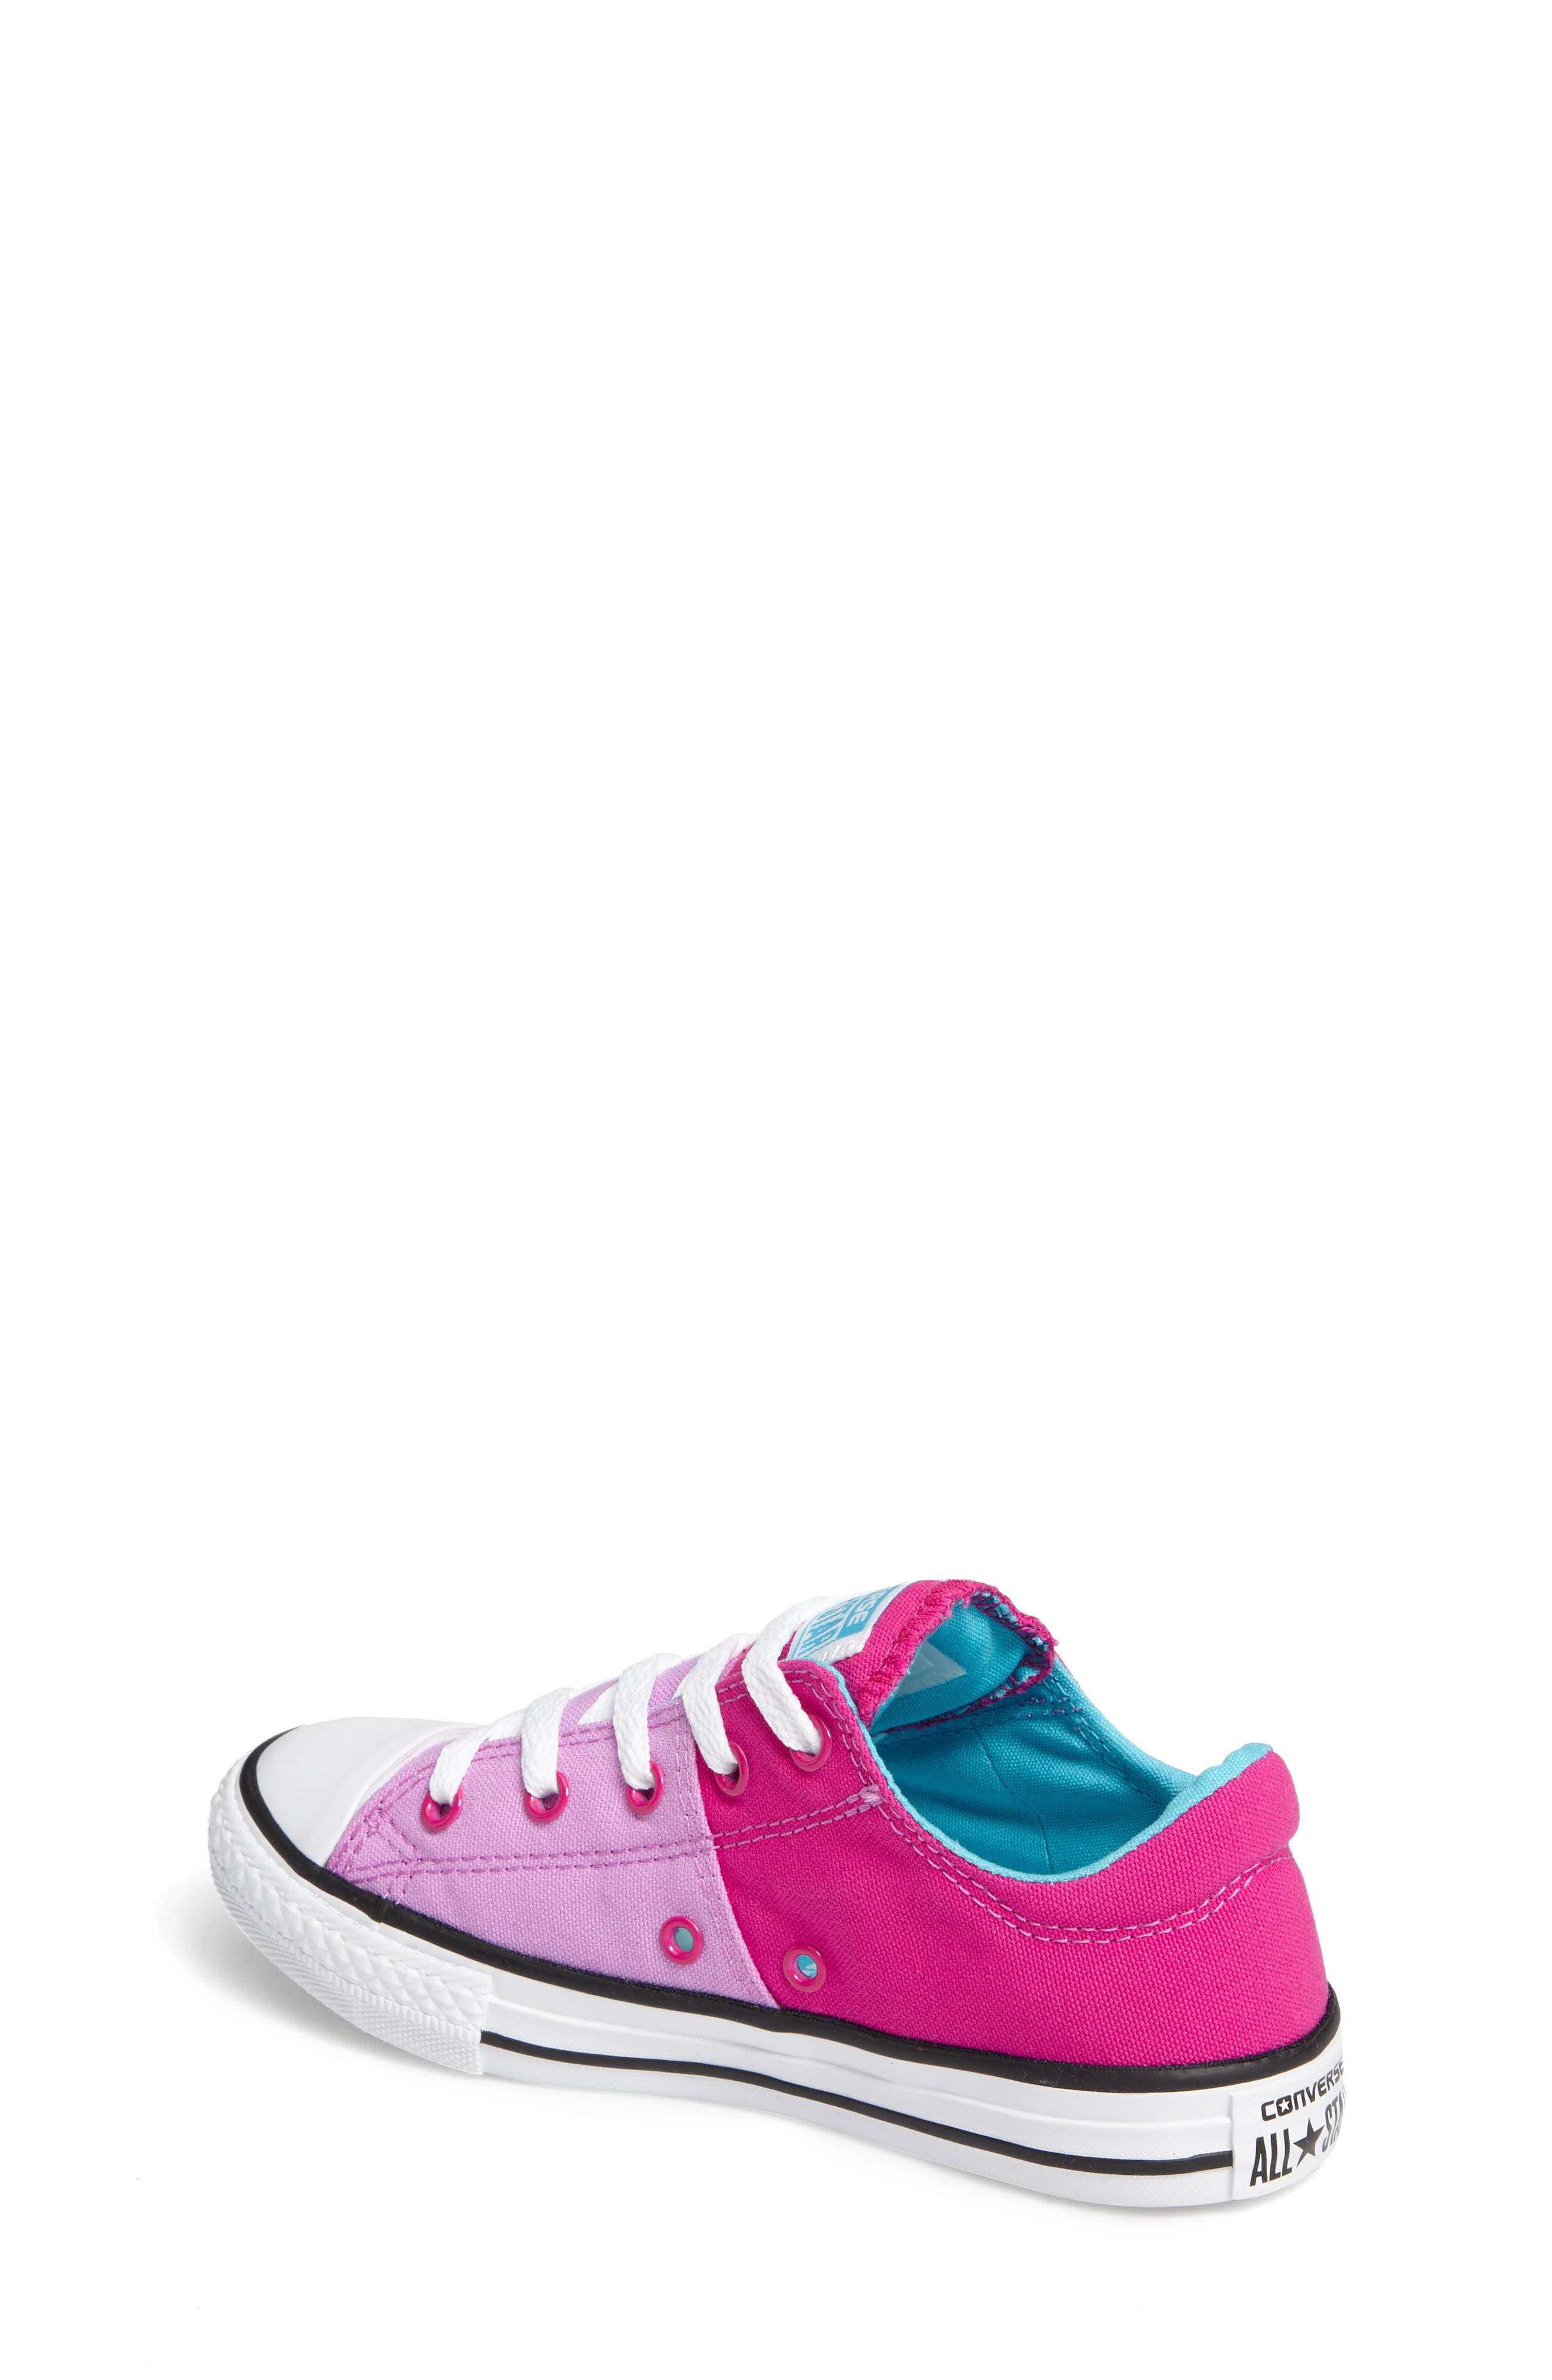 Chuck Taylor<sup>®</sup> All Star<sup>®</sup> Madison Low Top Sneaker,                             Alternate thumbnail 12, color,